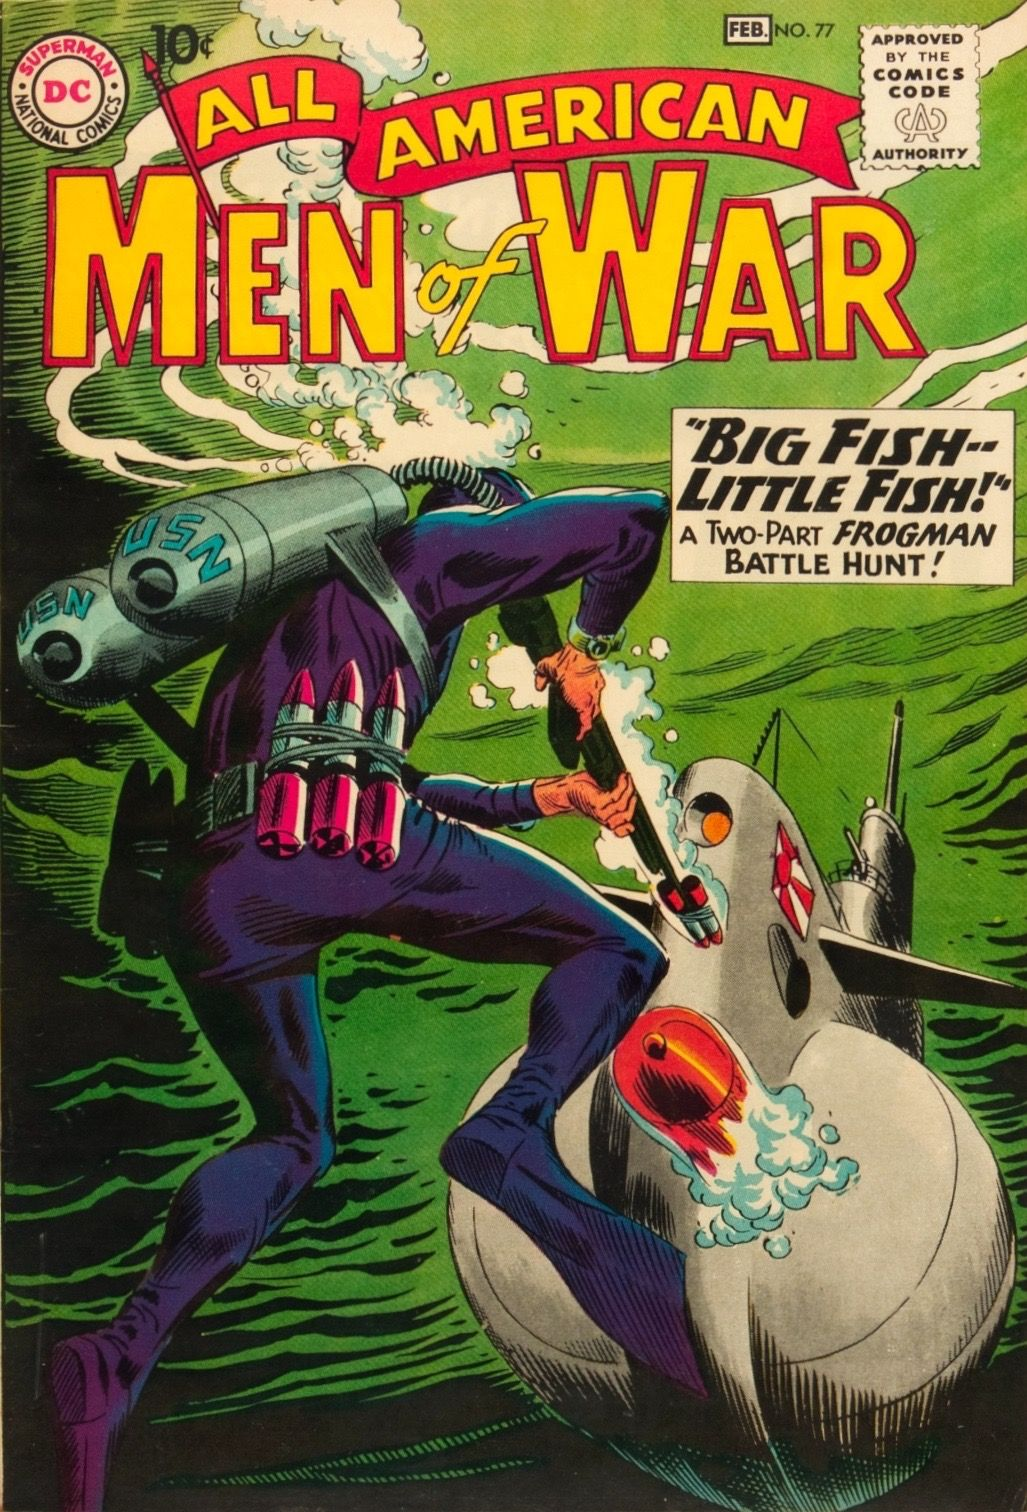 All-American Men of War #77 (1960).  Cover art:  Joe Kubert.  The Best UNDERWATER Comic Book Covers -  A collection of some of the top underwater comic book covers ever created - album by BATCAVE DWELLER!